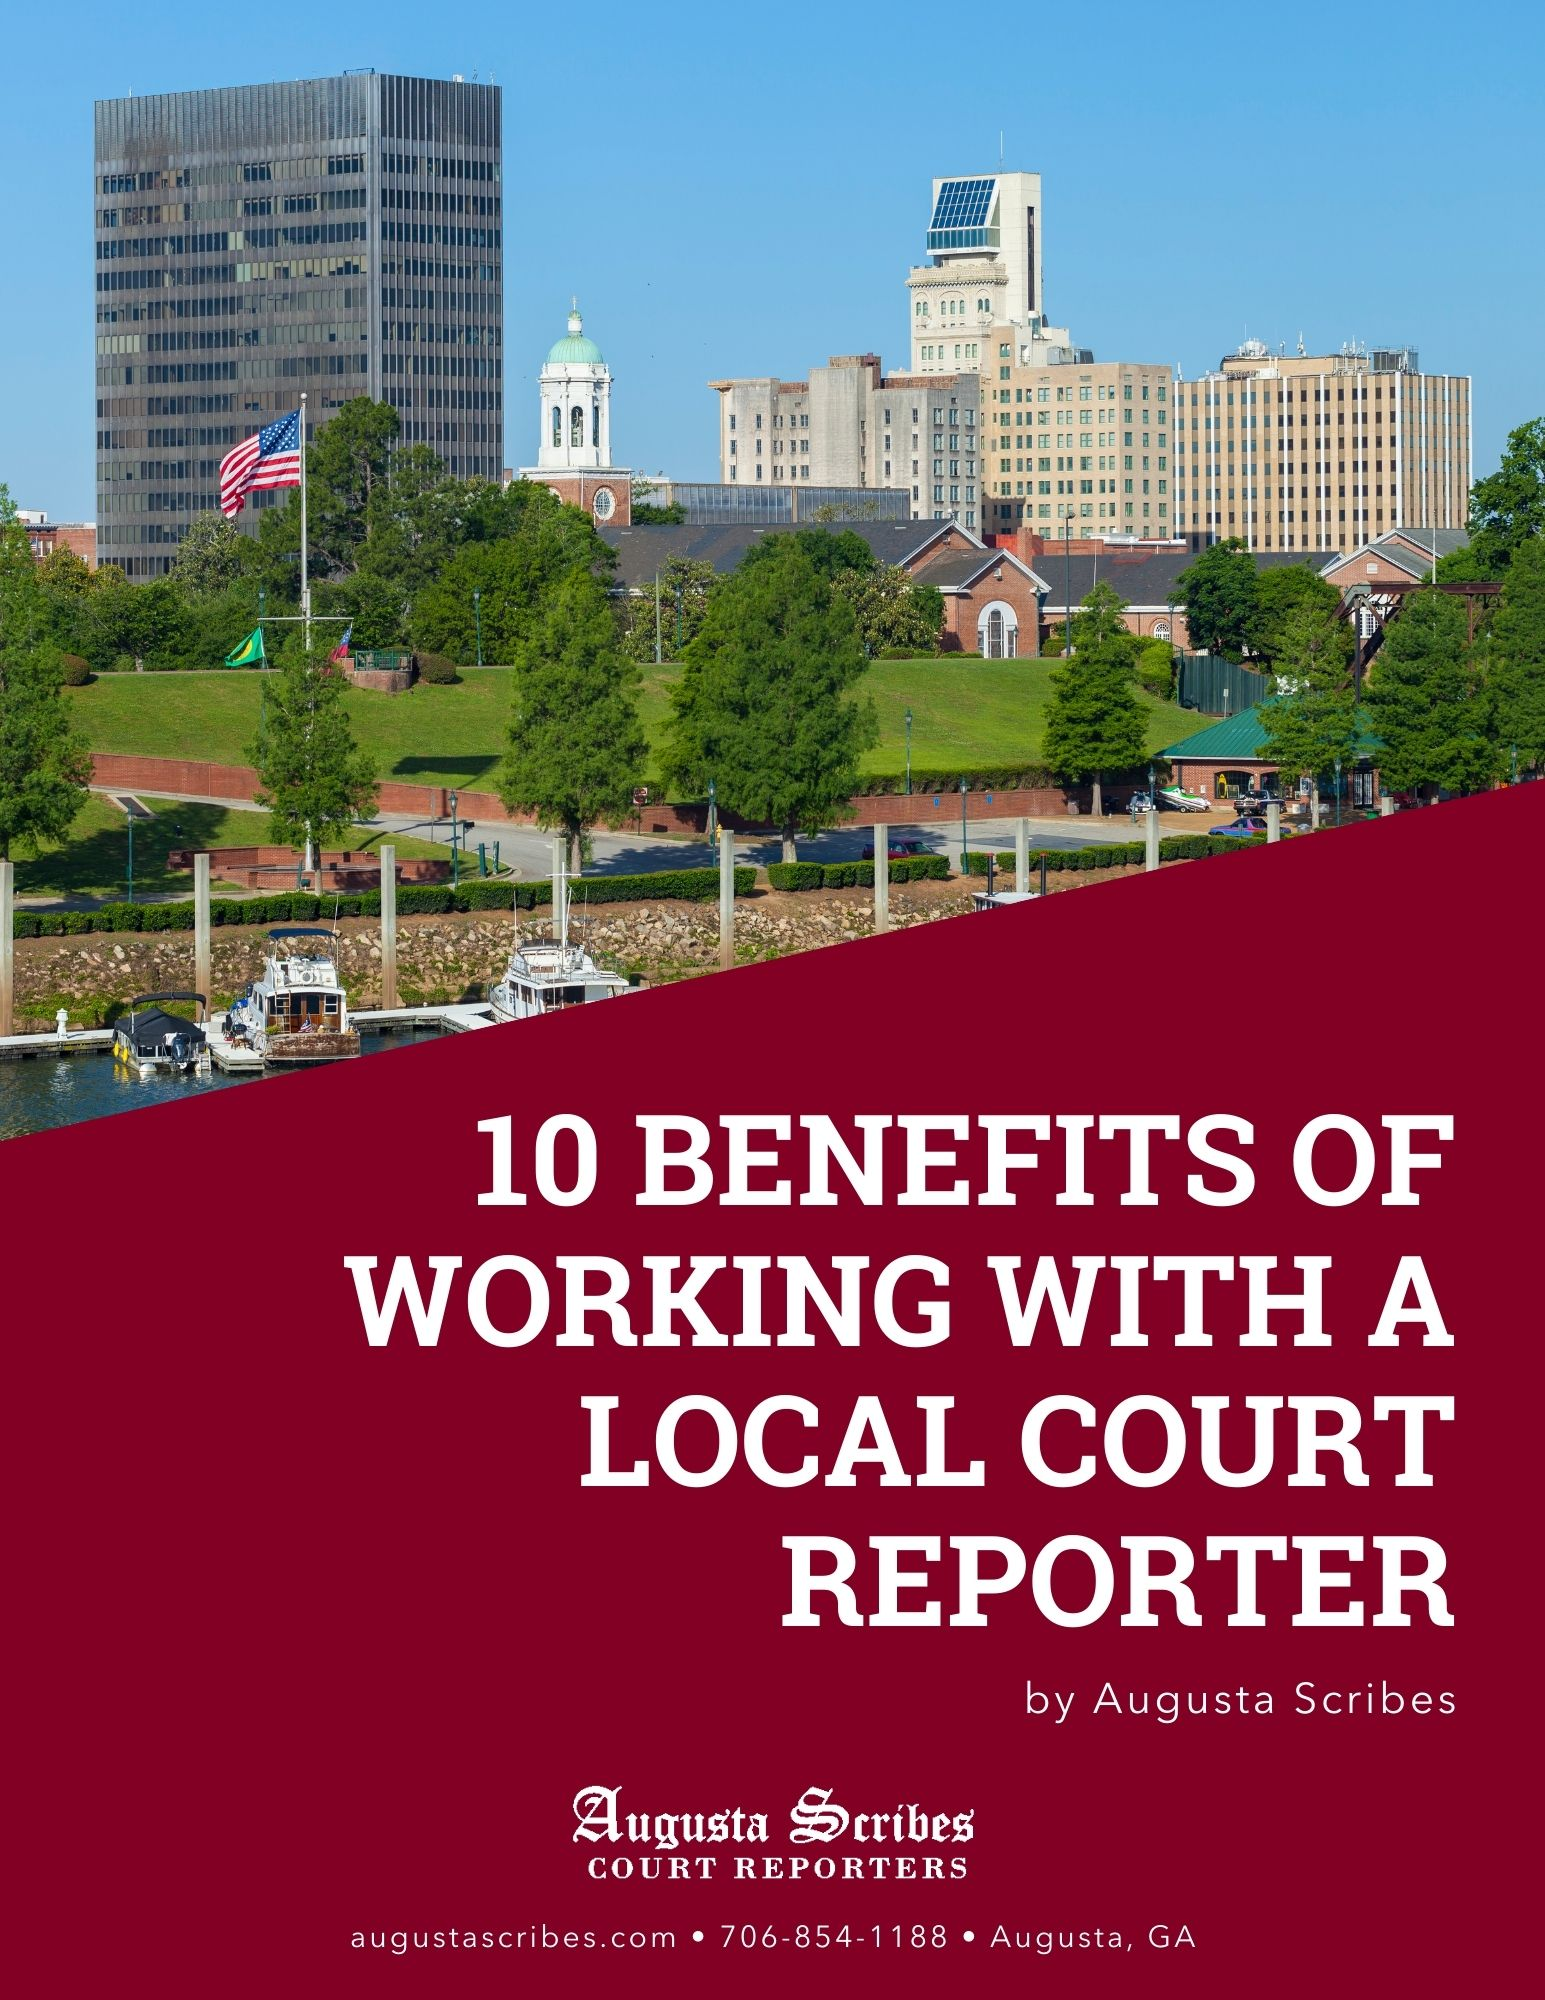 10 Benefits Of A Local Court Reporter